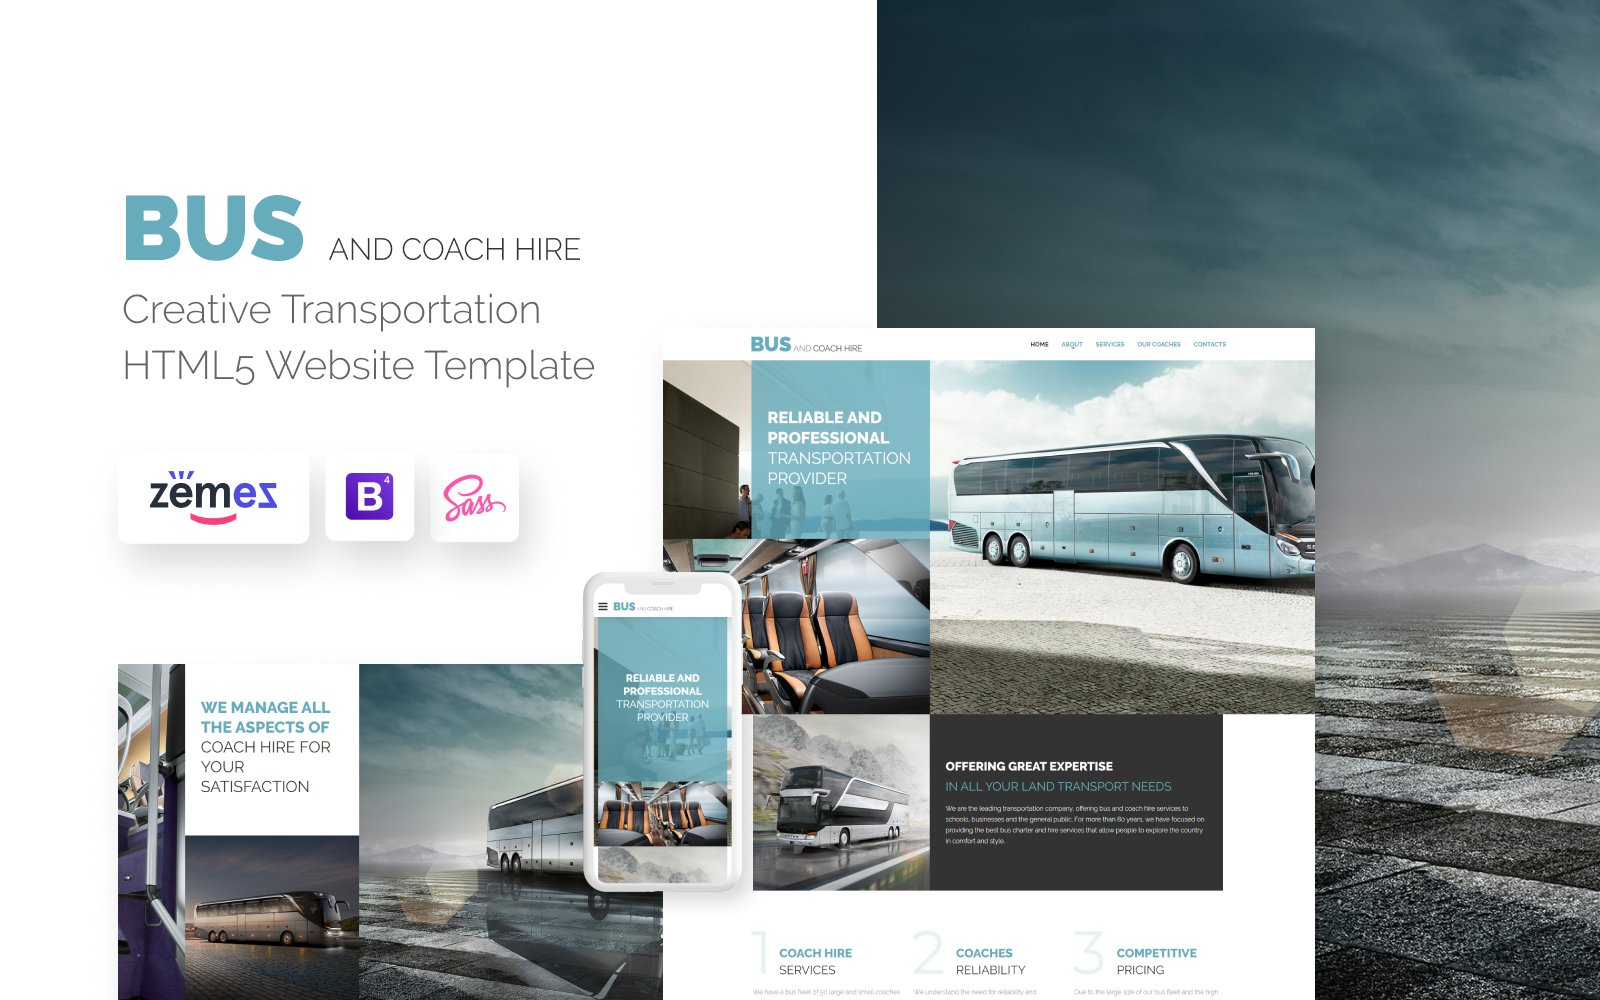 Bus and Coach Hire №57680